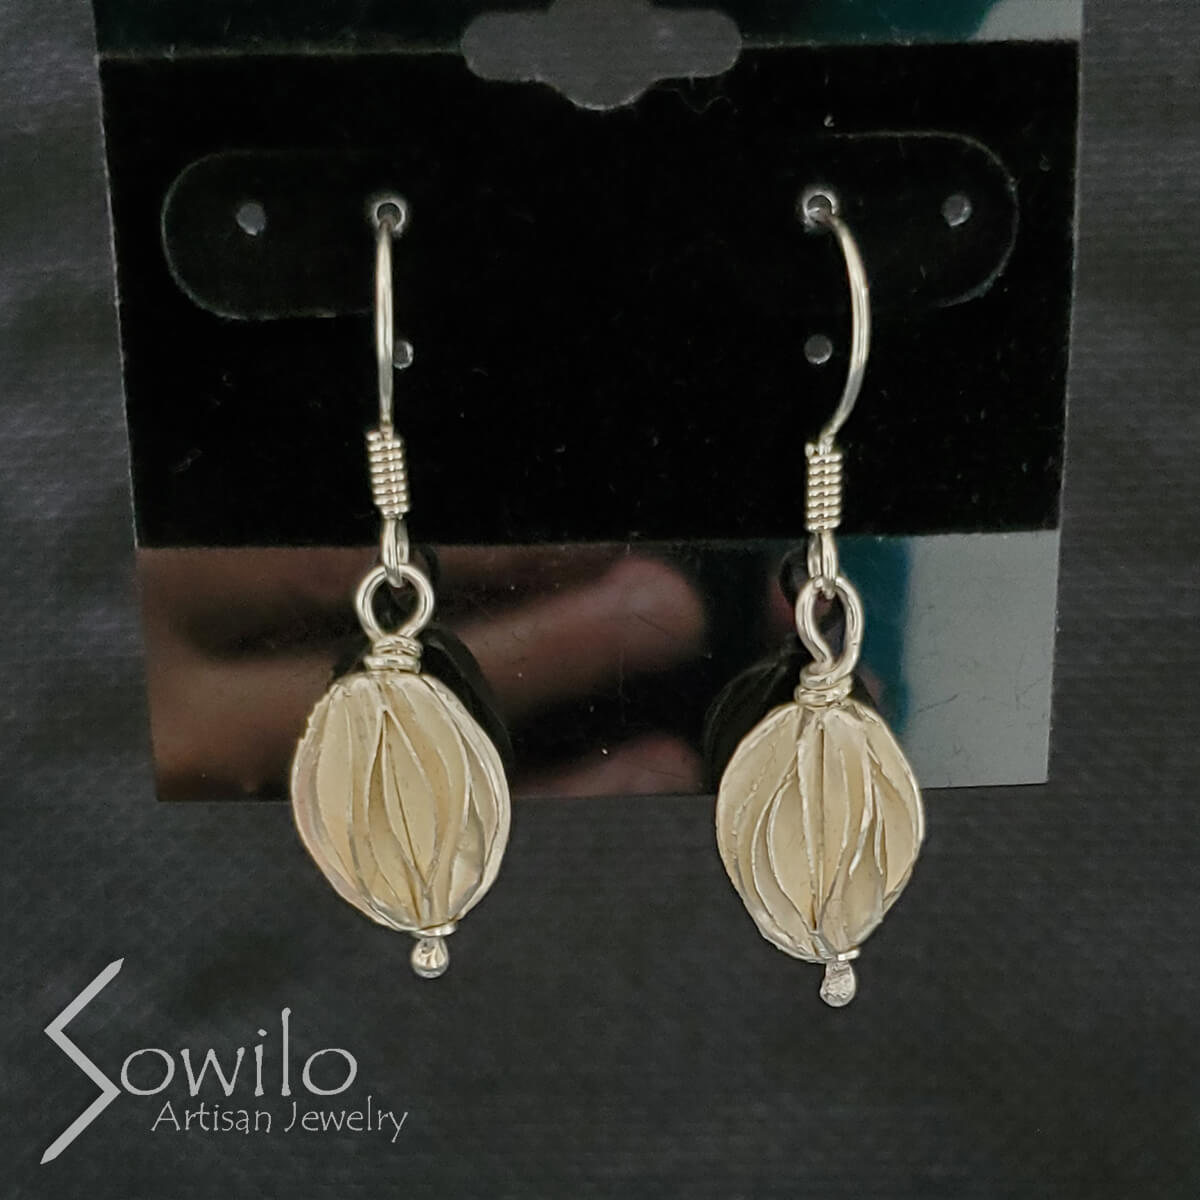 Gallery - Square - Sowilo Artisan Jewelry - Earrings